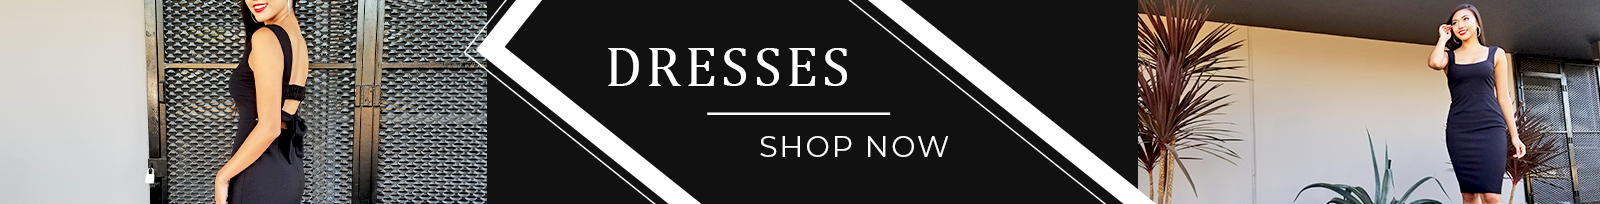 category-pages-marketing-banner-dresses.jpg